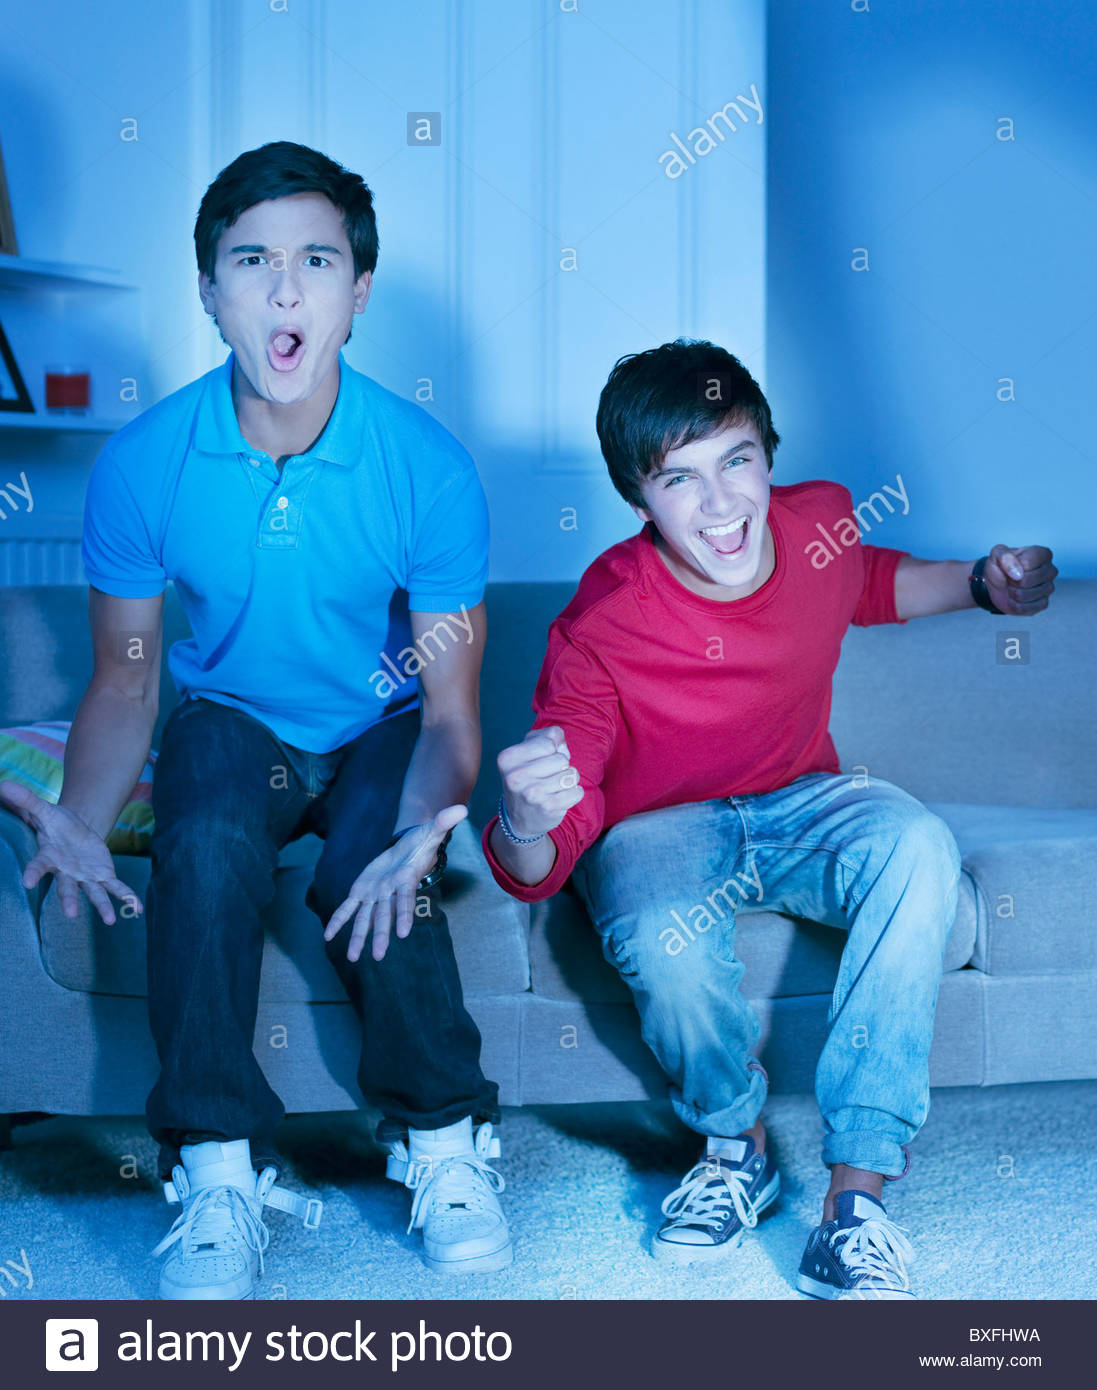 Shouting teenage boys watching television - Stock Image